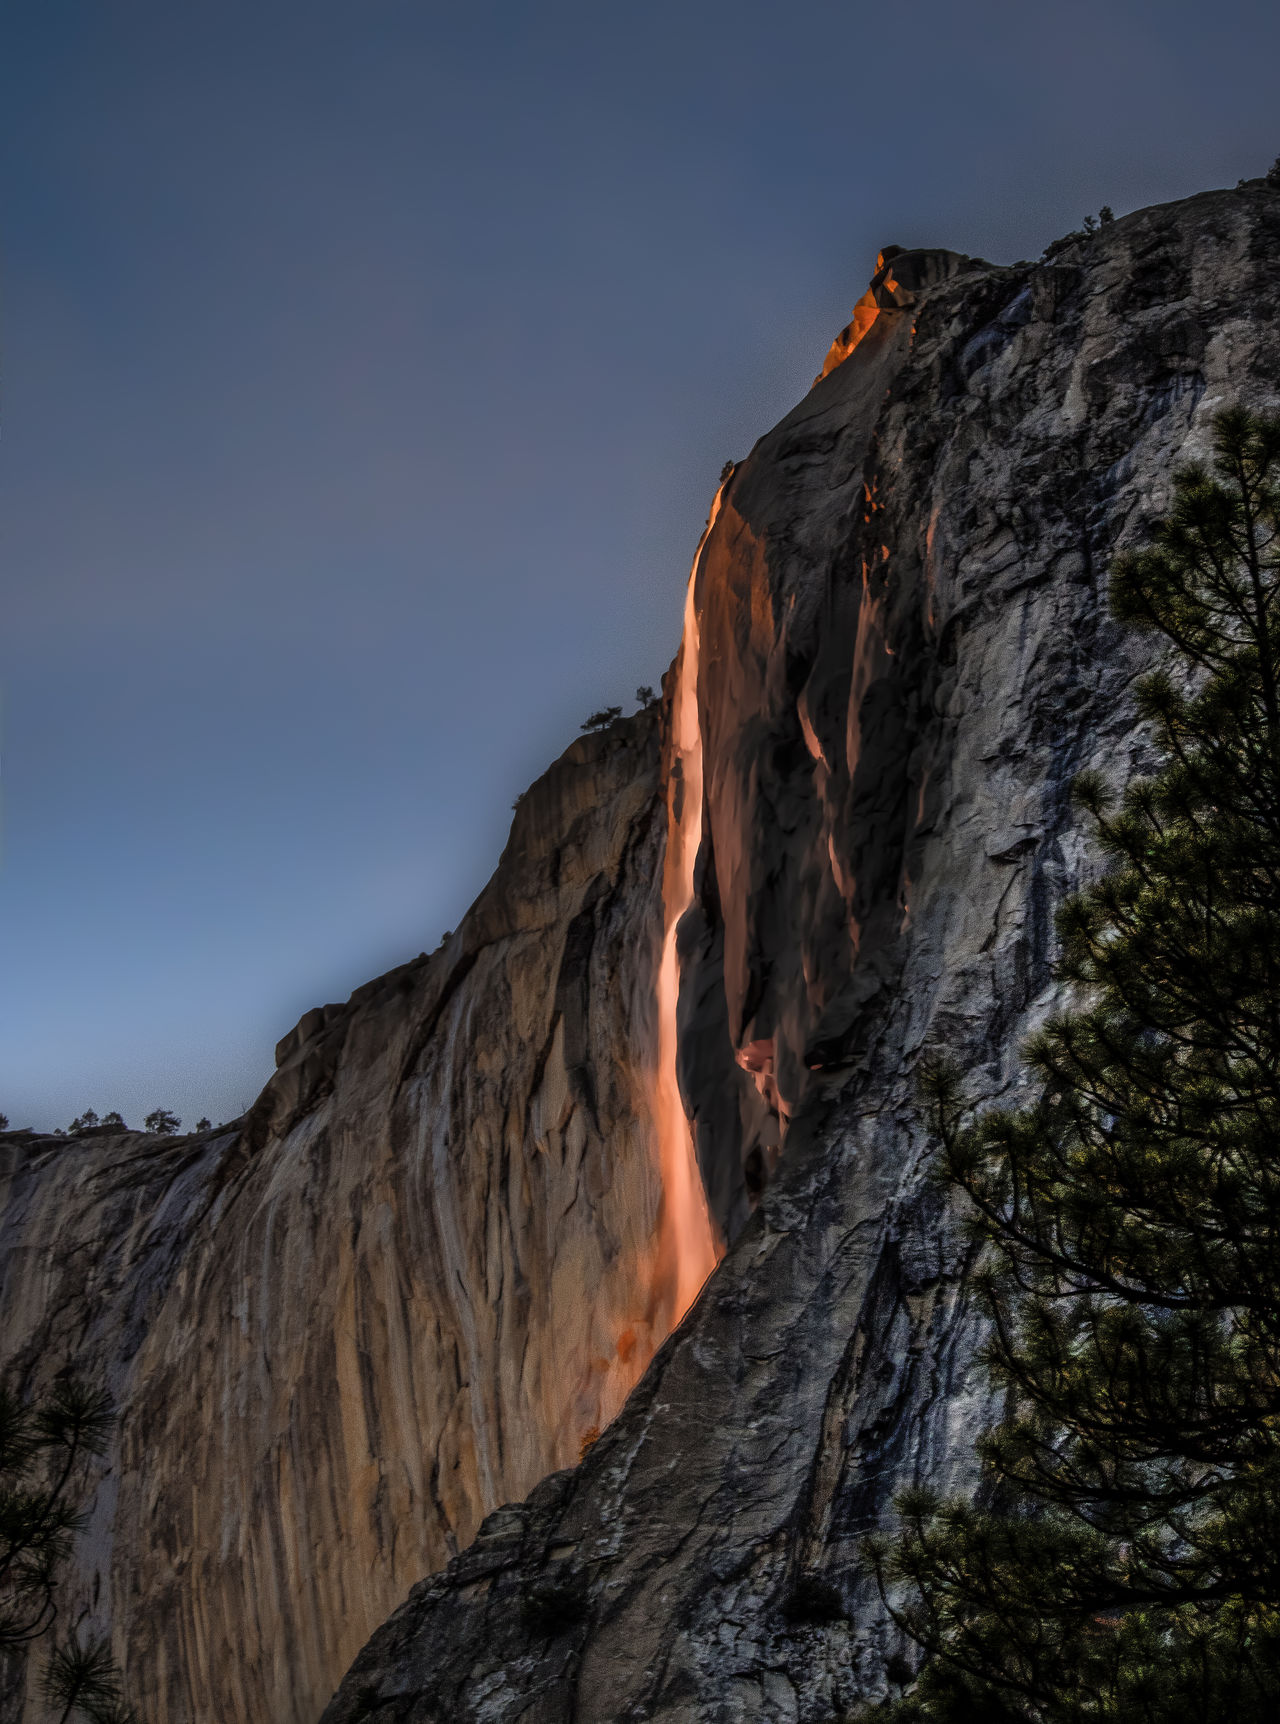 Yosemite National Park Yosemite Waterfall Fire Fall Glowing Water Glowing Waterfall Horsetail Falls Natural Phenomena Natural Phenomenon Red Water Waterfall Mountain Mountains Glow Glowing Glowing Water Eerie Glow Red Glow RED LINE